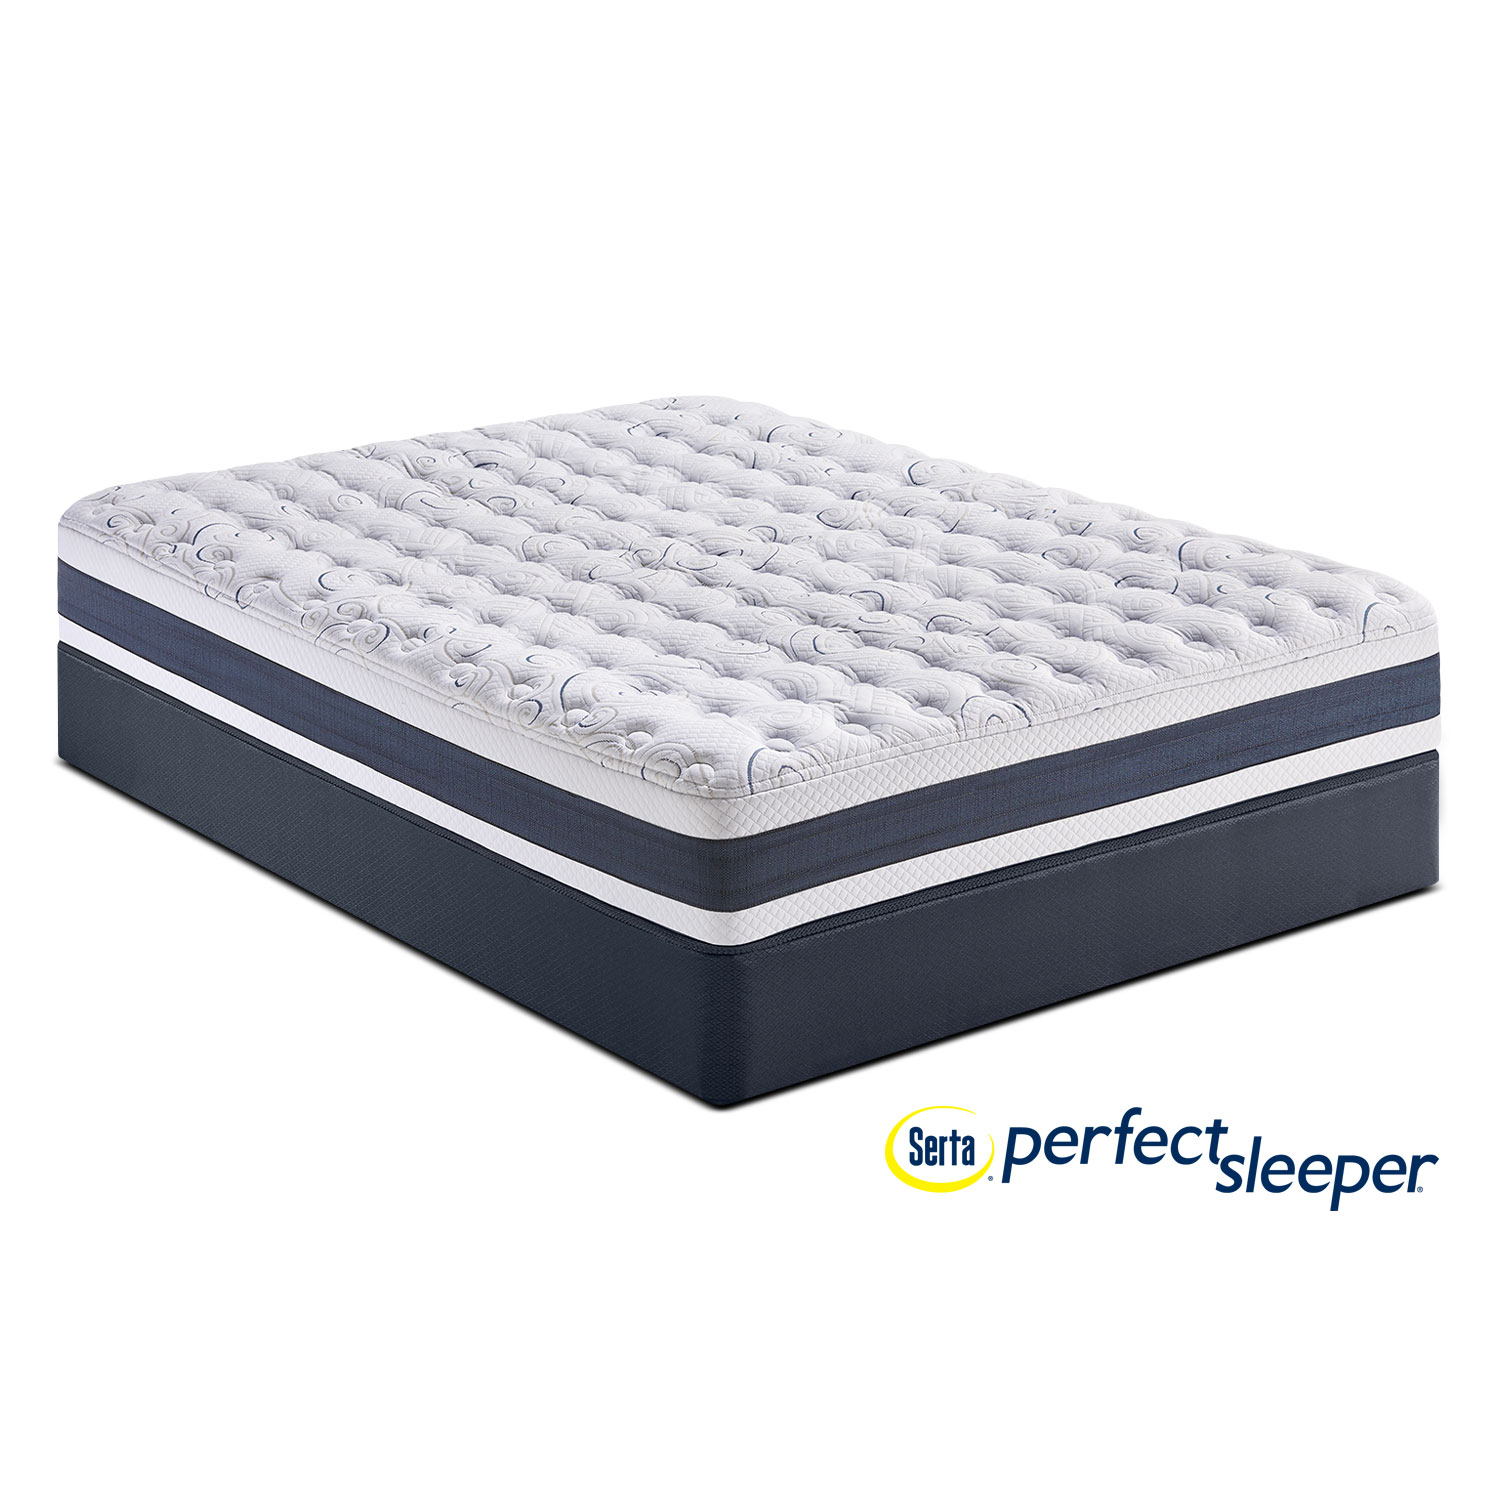 Mattresses and Bedding - Strathfield Firm Queen Mattress and Low-Profile Foundation Set